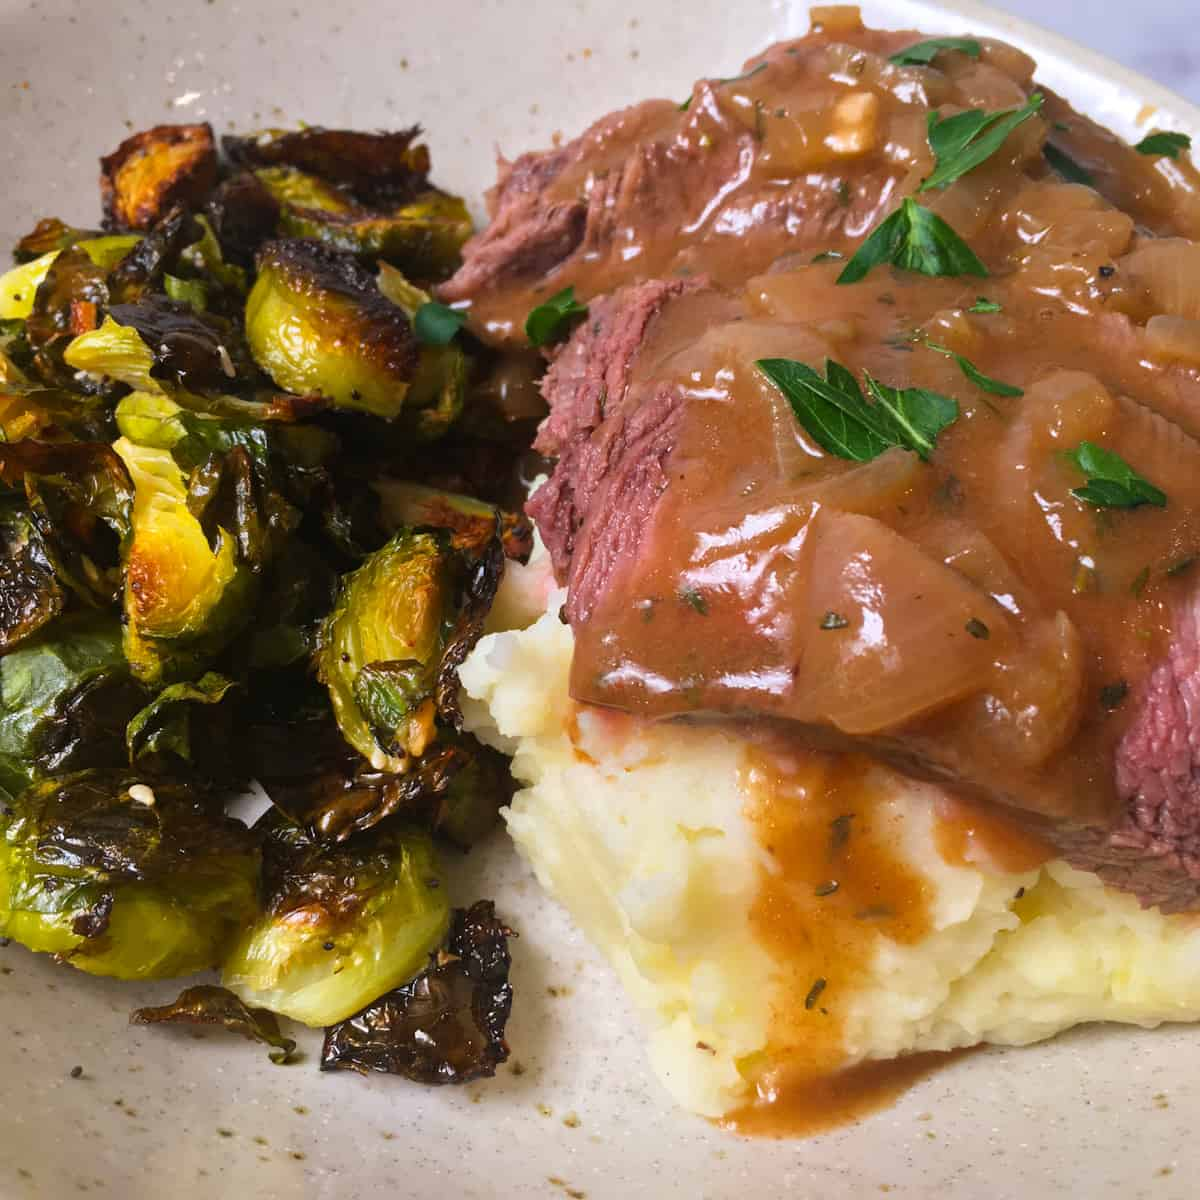 london broil gravy potatoes brussels sprouts